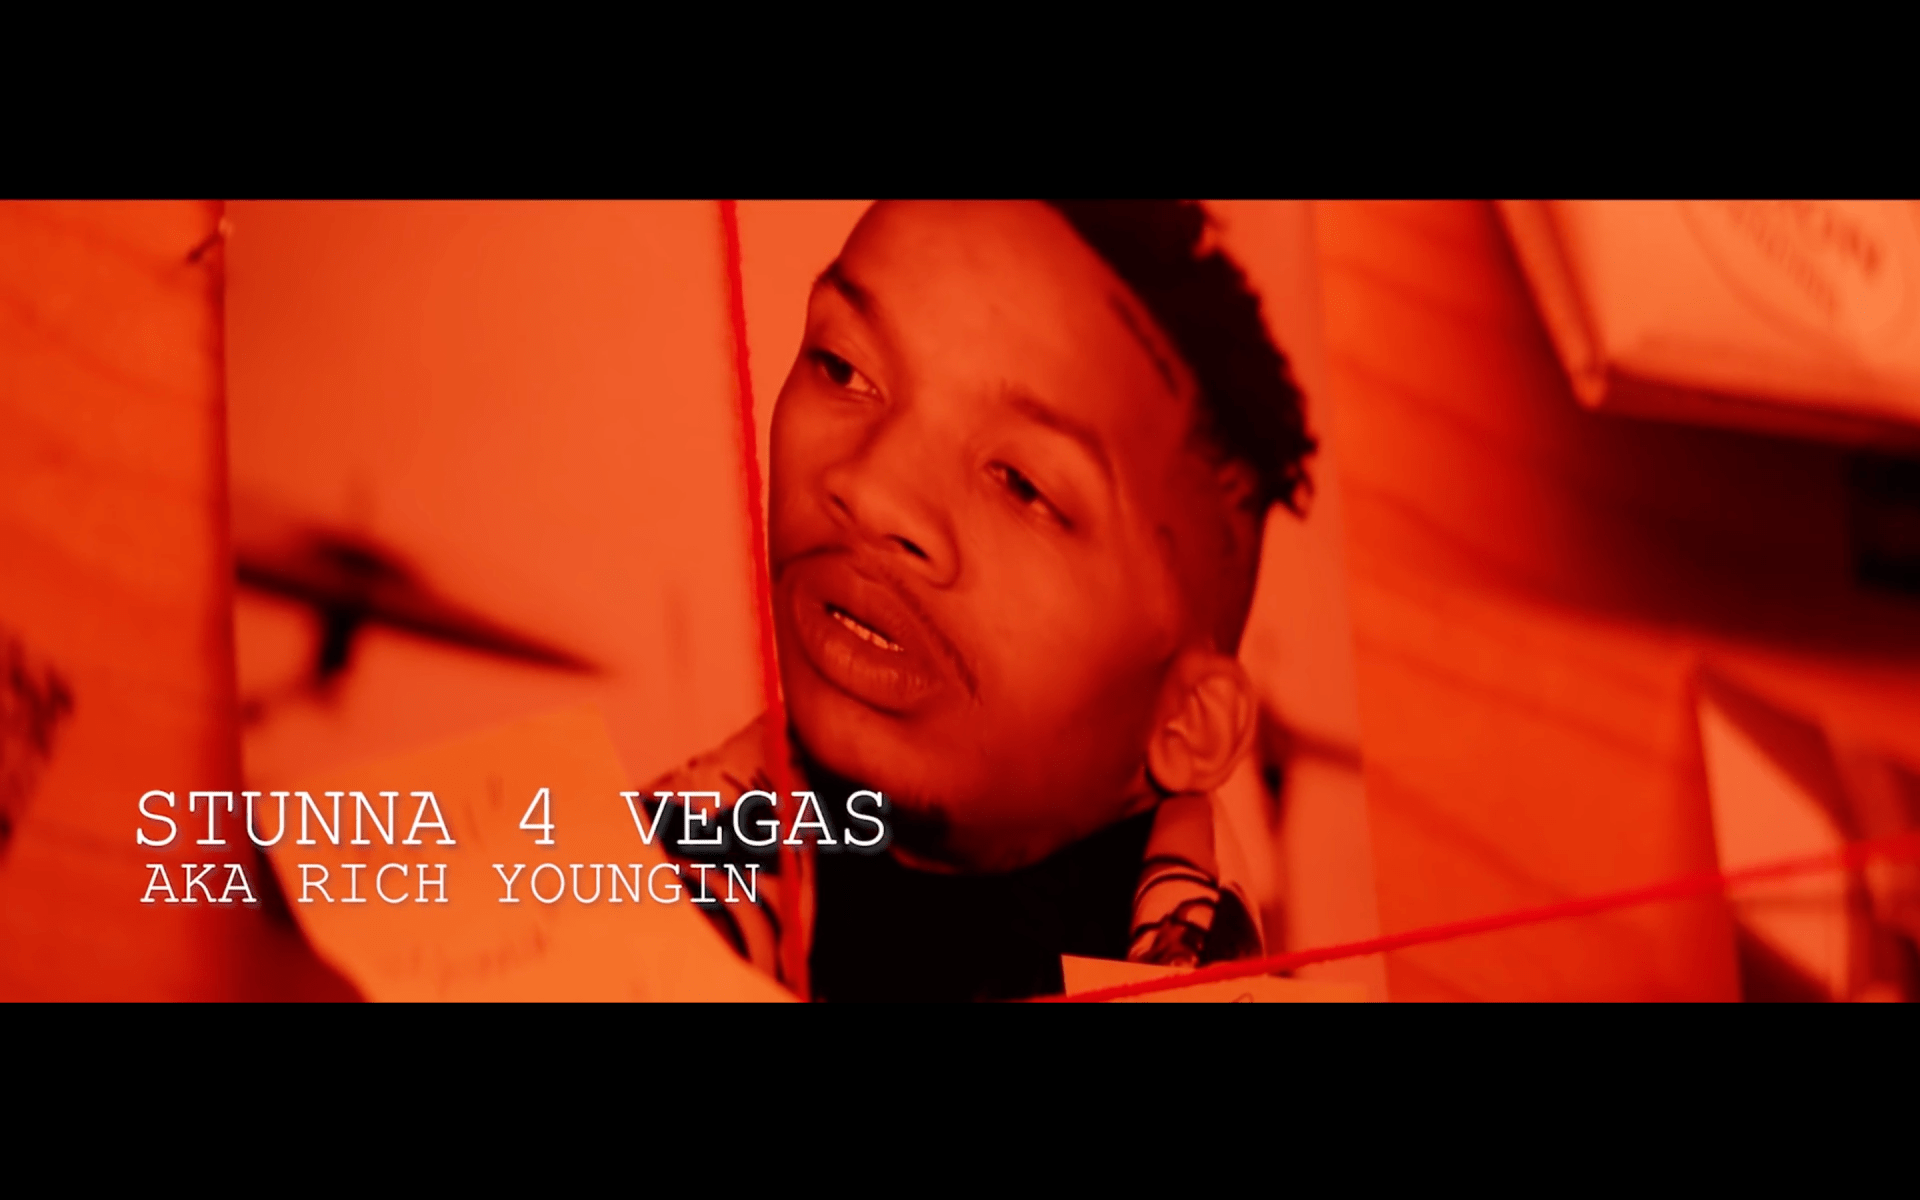 VIDEO: Stunna 4 Vegas – DO DAT (feat. Dababy & Lil Baby) [Official Music Video]